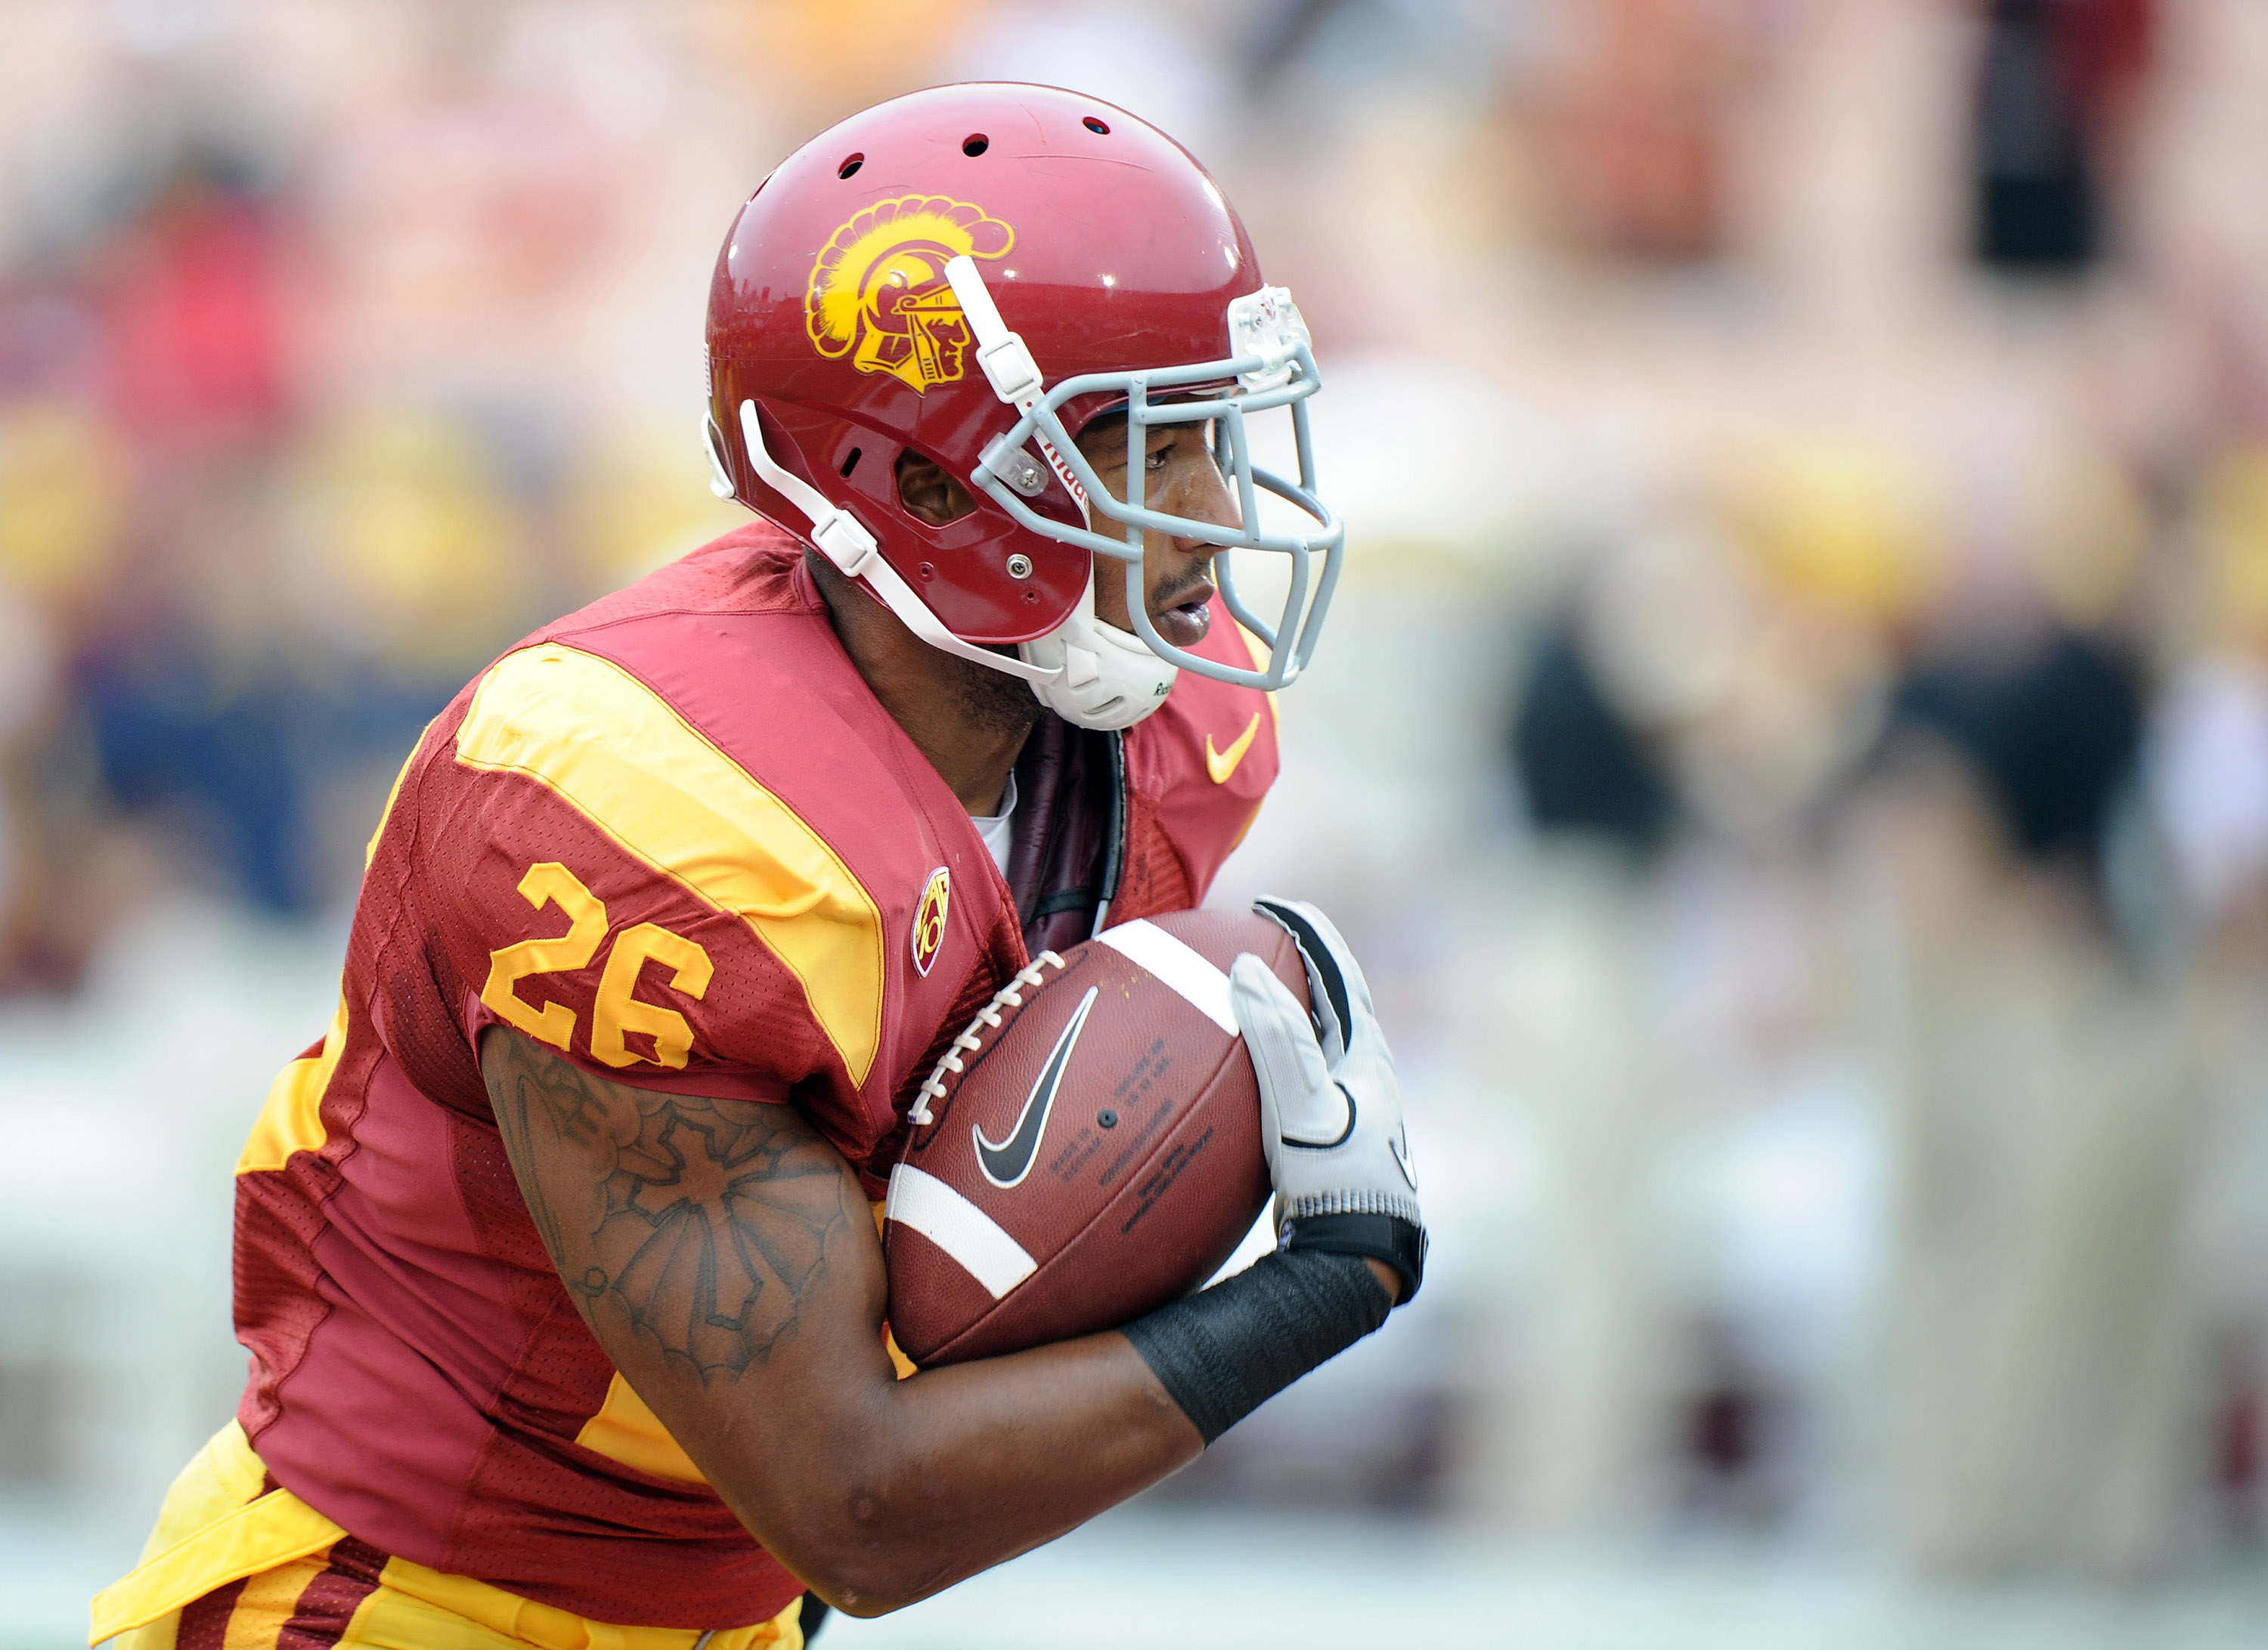 LOS ANGELES, CA - OCTOBER 16:  Marc Tyler #26 of the USC Trojans warms up before the game against the California Golden Bears at Los Angeles Memorial Coliseum on October 16, 2010 in Los Angeles, California.  (Photo by Harry How/Getty Images)